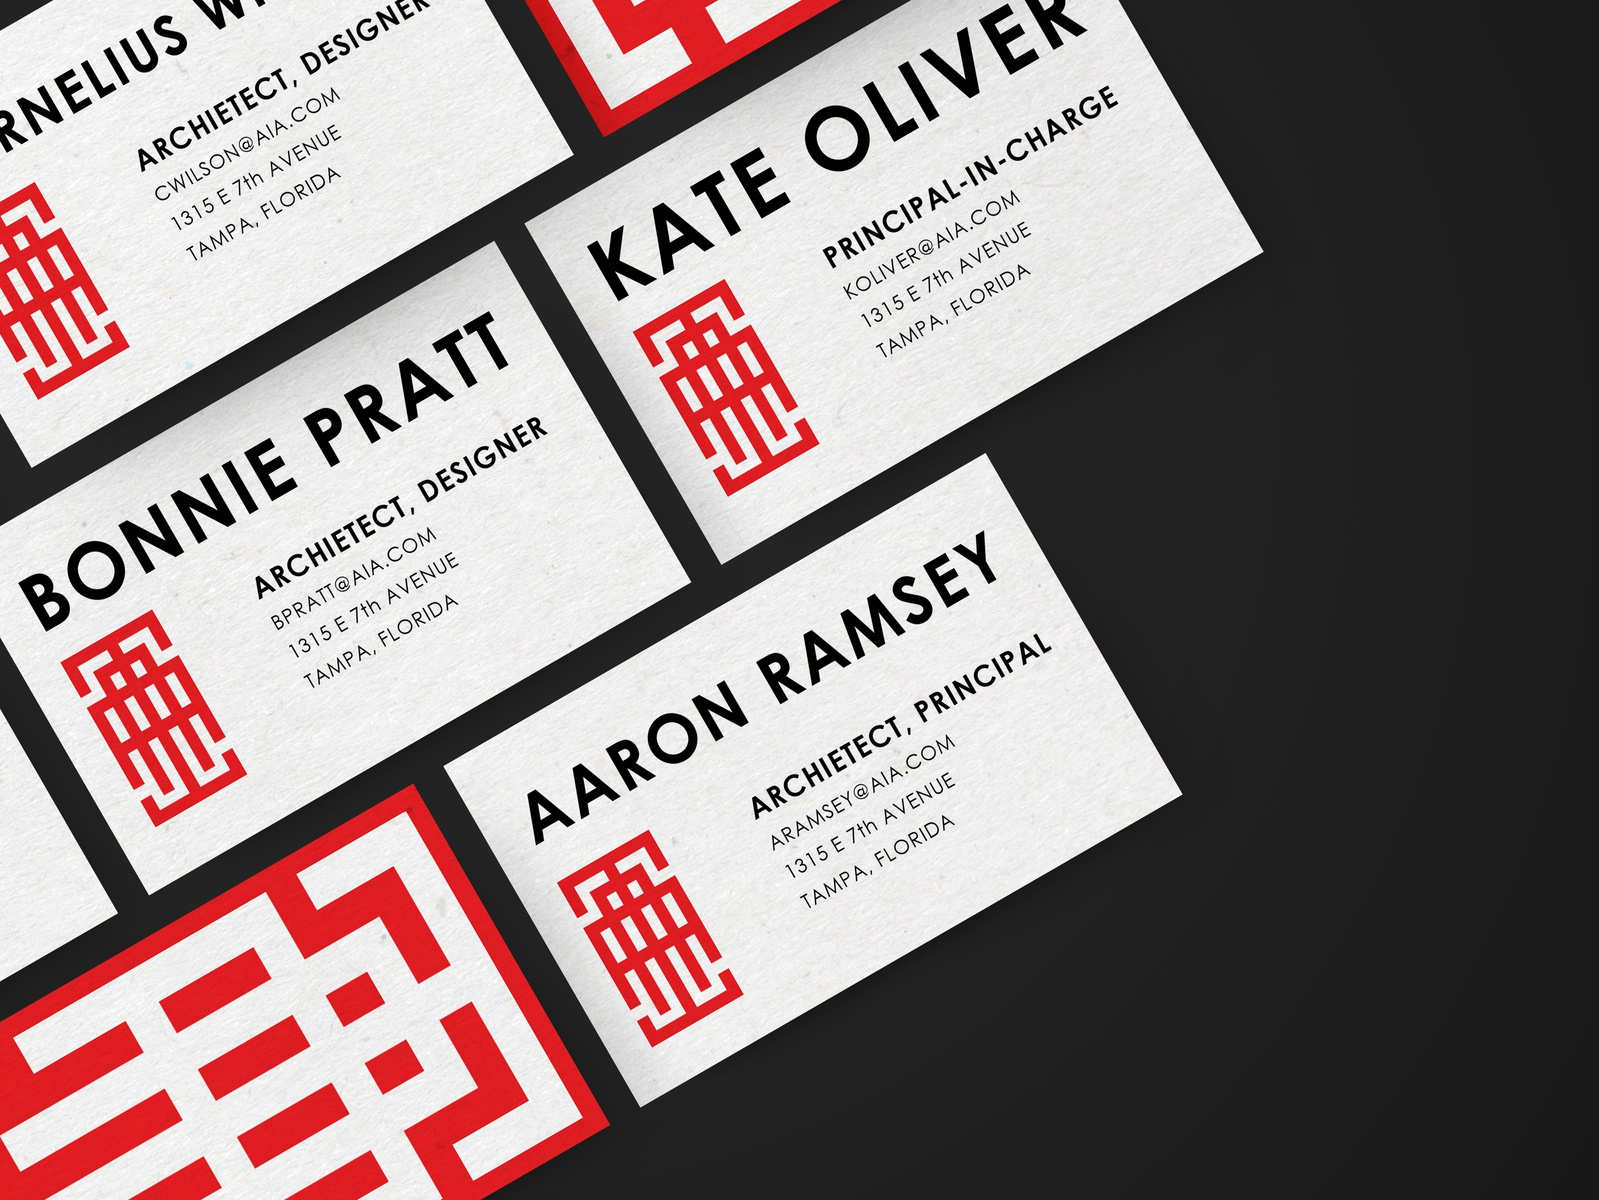 Aia business cards by patrick henderson dribbble business cards mockup 4x colourmoves